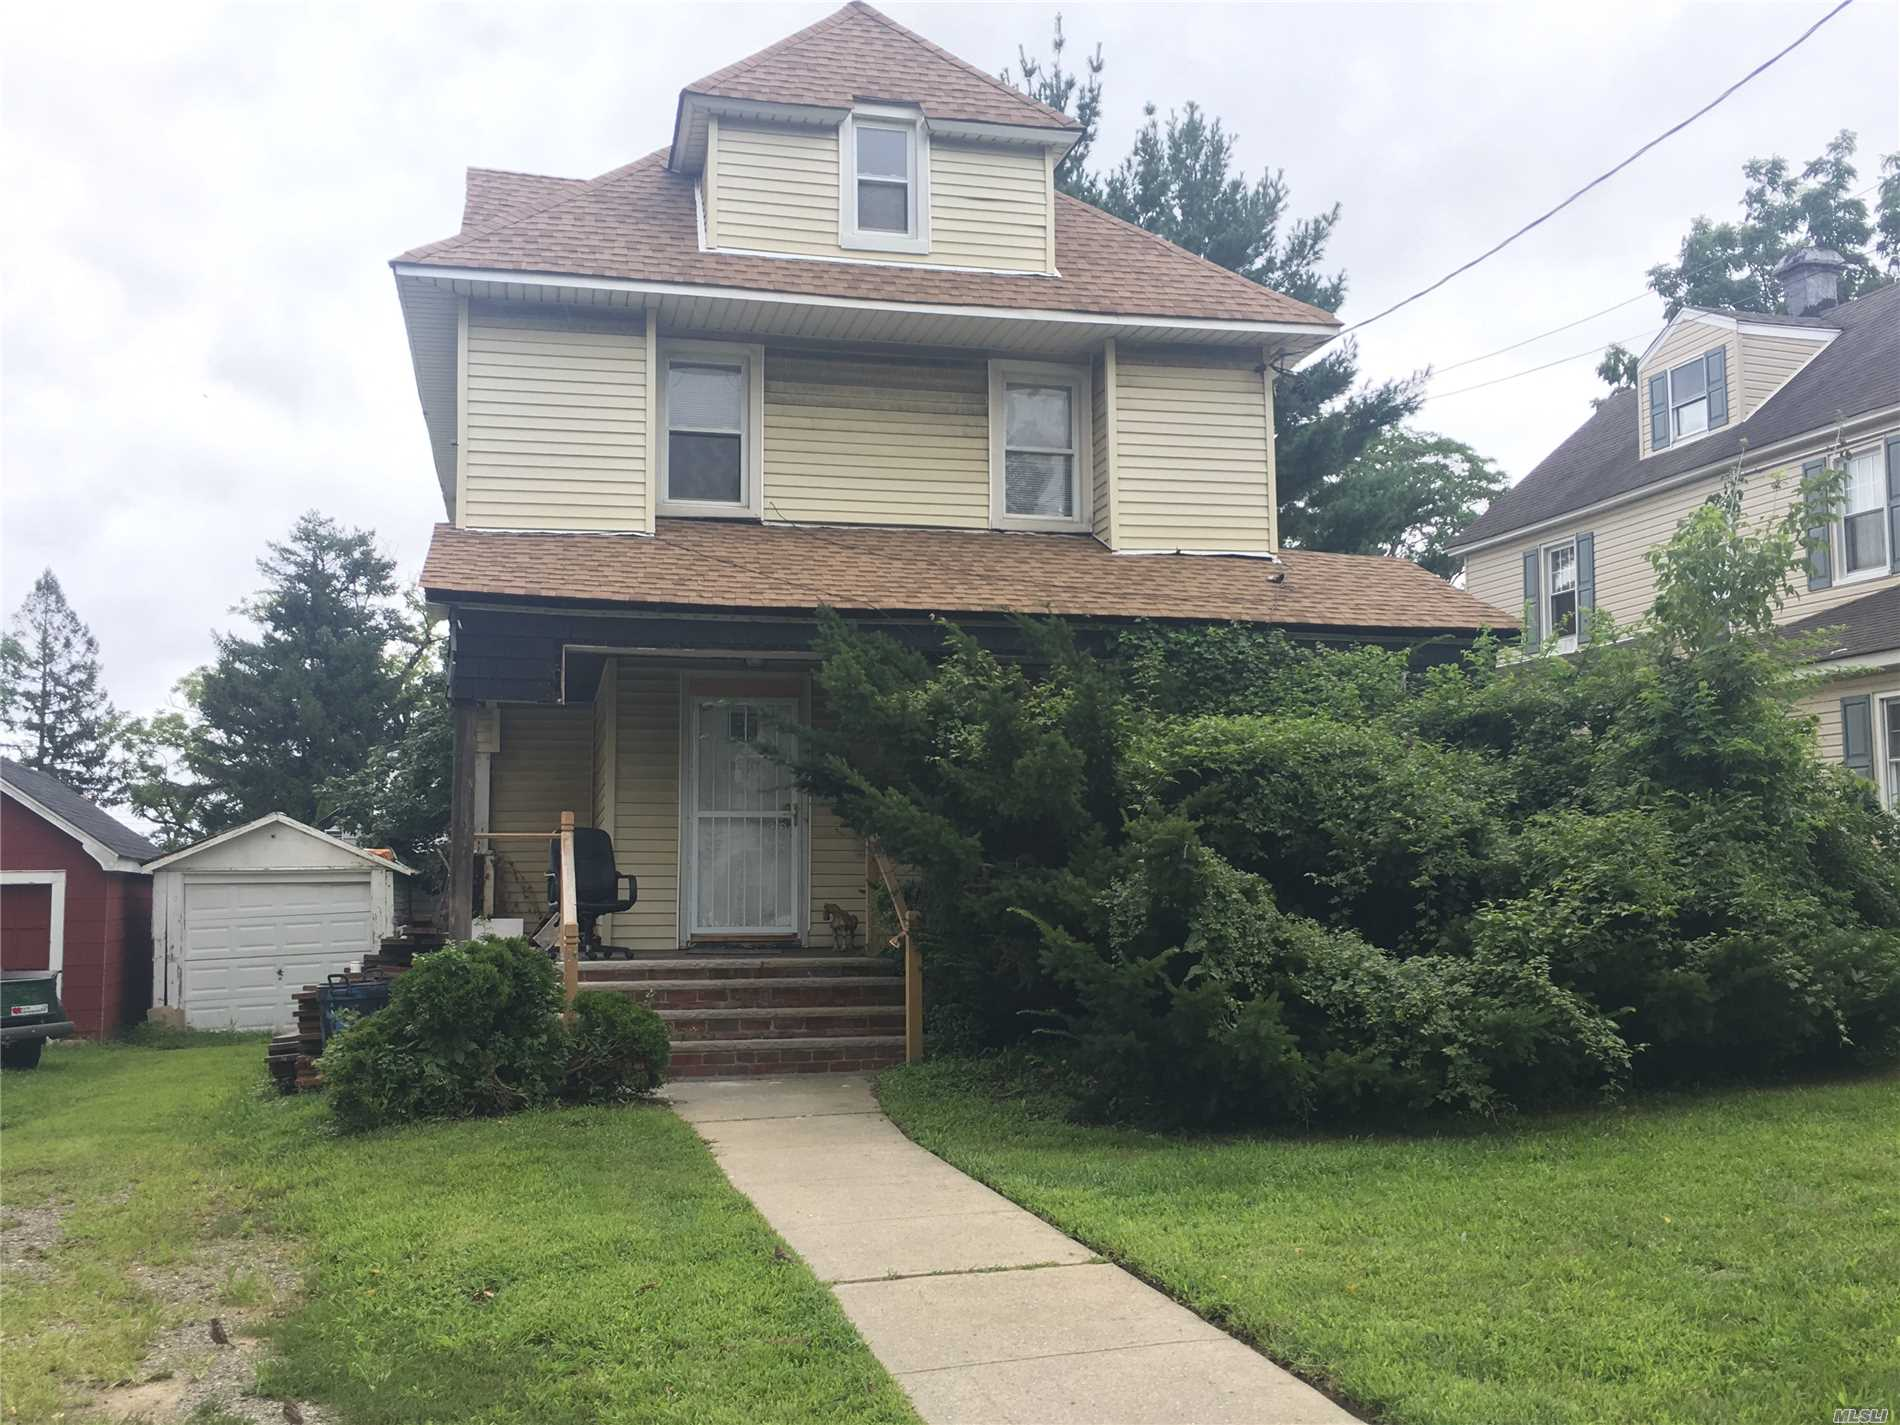 Prime North Bayside Location On 50 X 100 Lot. House Sold As Is. Some Renovations Have Been Done, New Gas Heat Conversion With Tankless Water Heater, Roof Is Aprox 3 Years Old, New Wood Floors Throughout. Complete The Renovation Or Build To Suit.